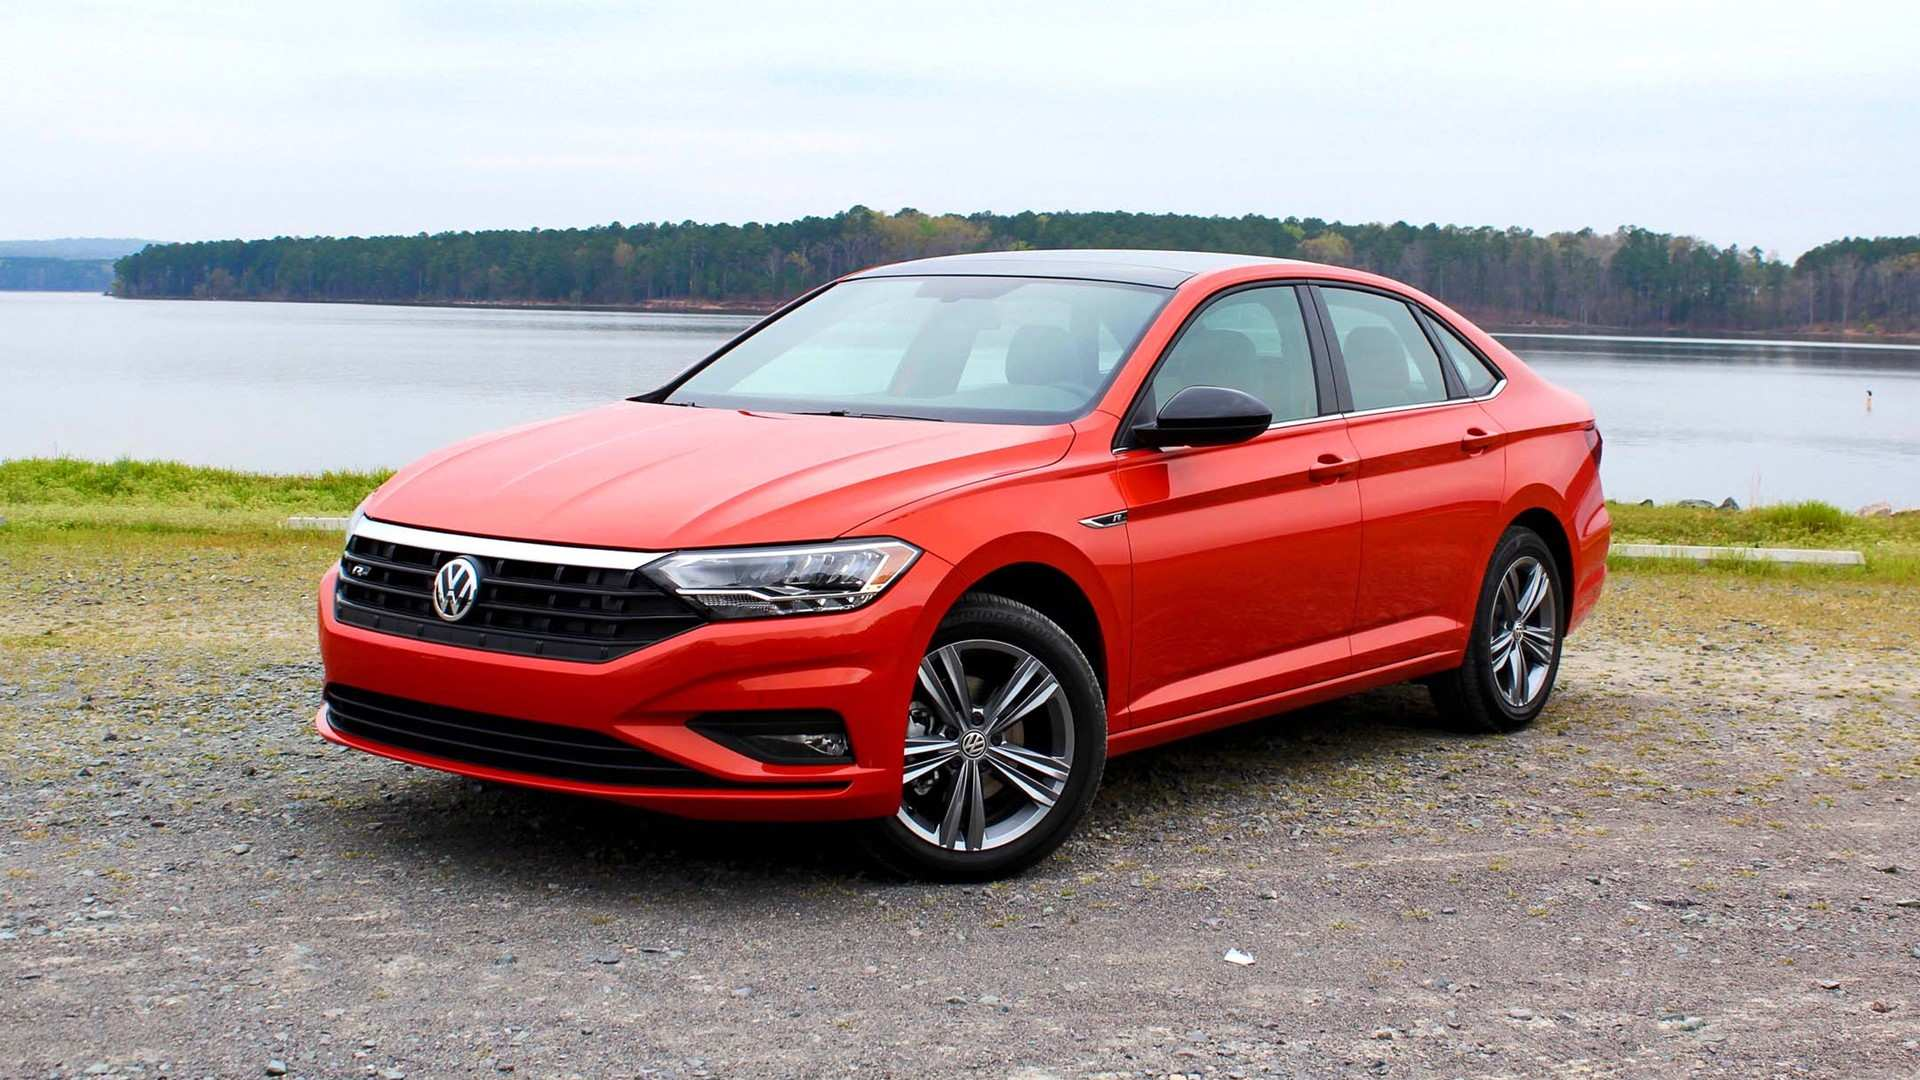 39 Concept of 2019 Vw Jetta Canada Performance and New Engine with 2019 Vw Jetta Canada